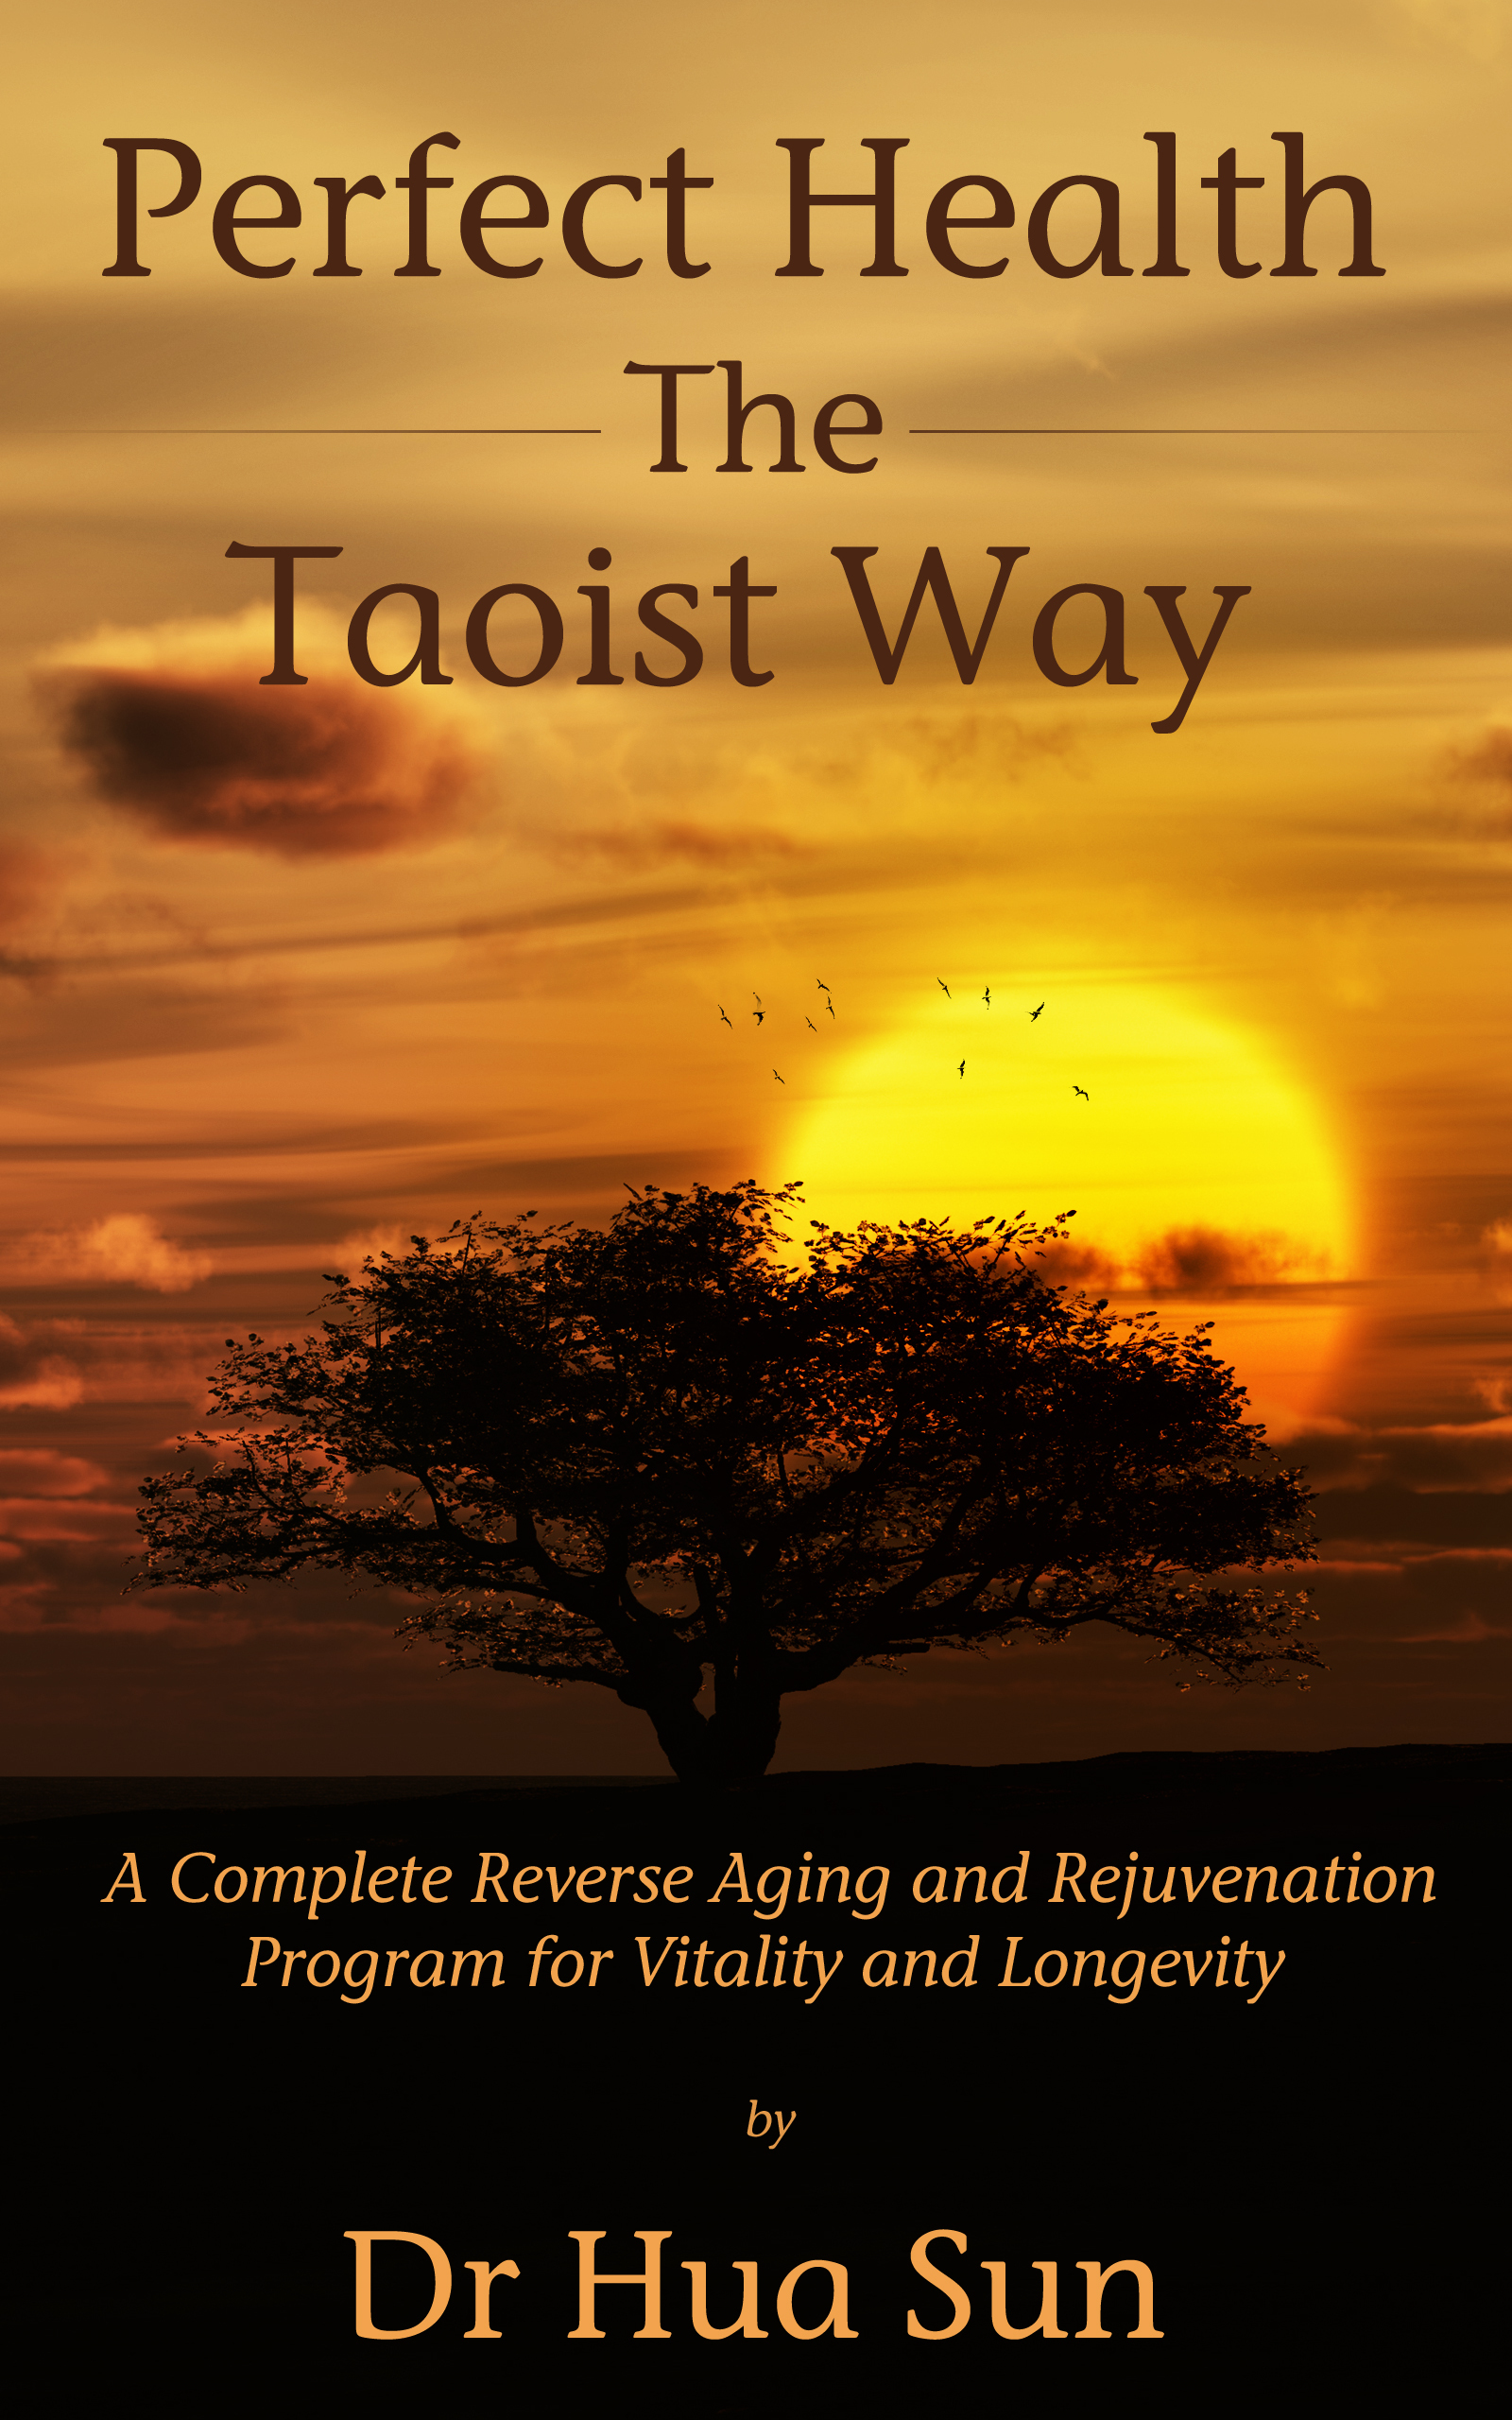 Perfect Health The Taoist Way